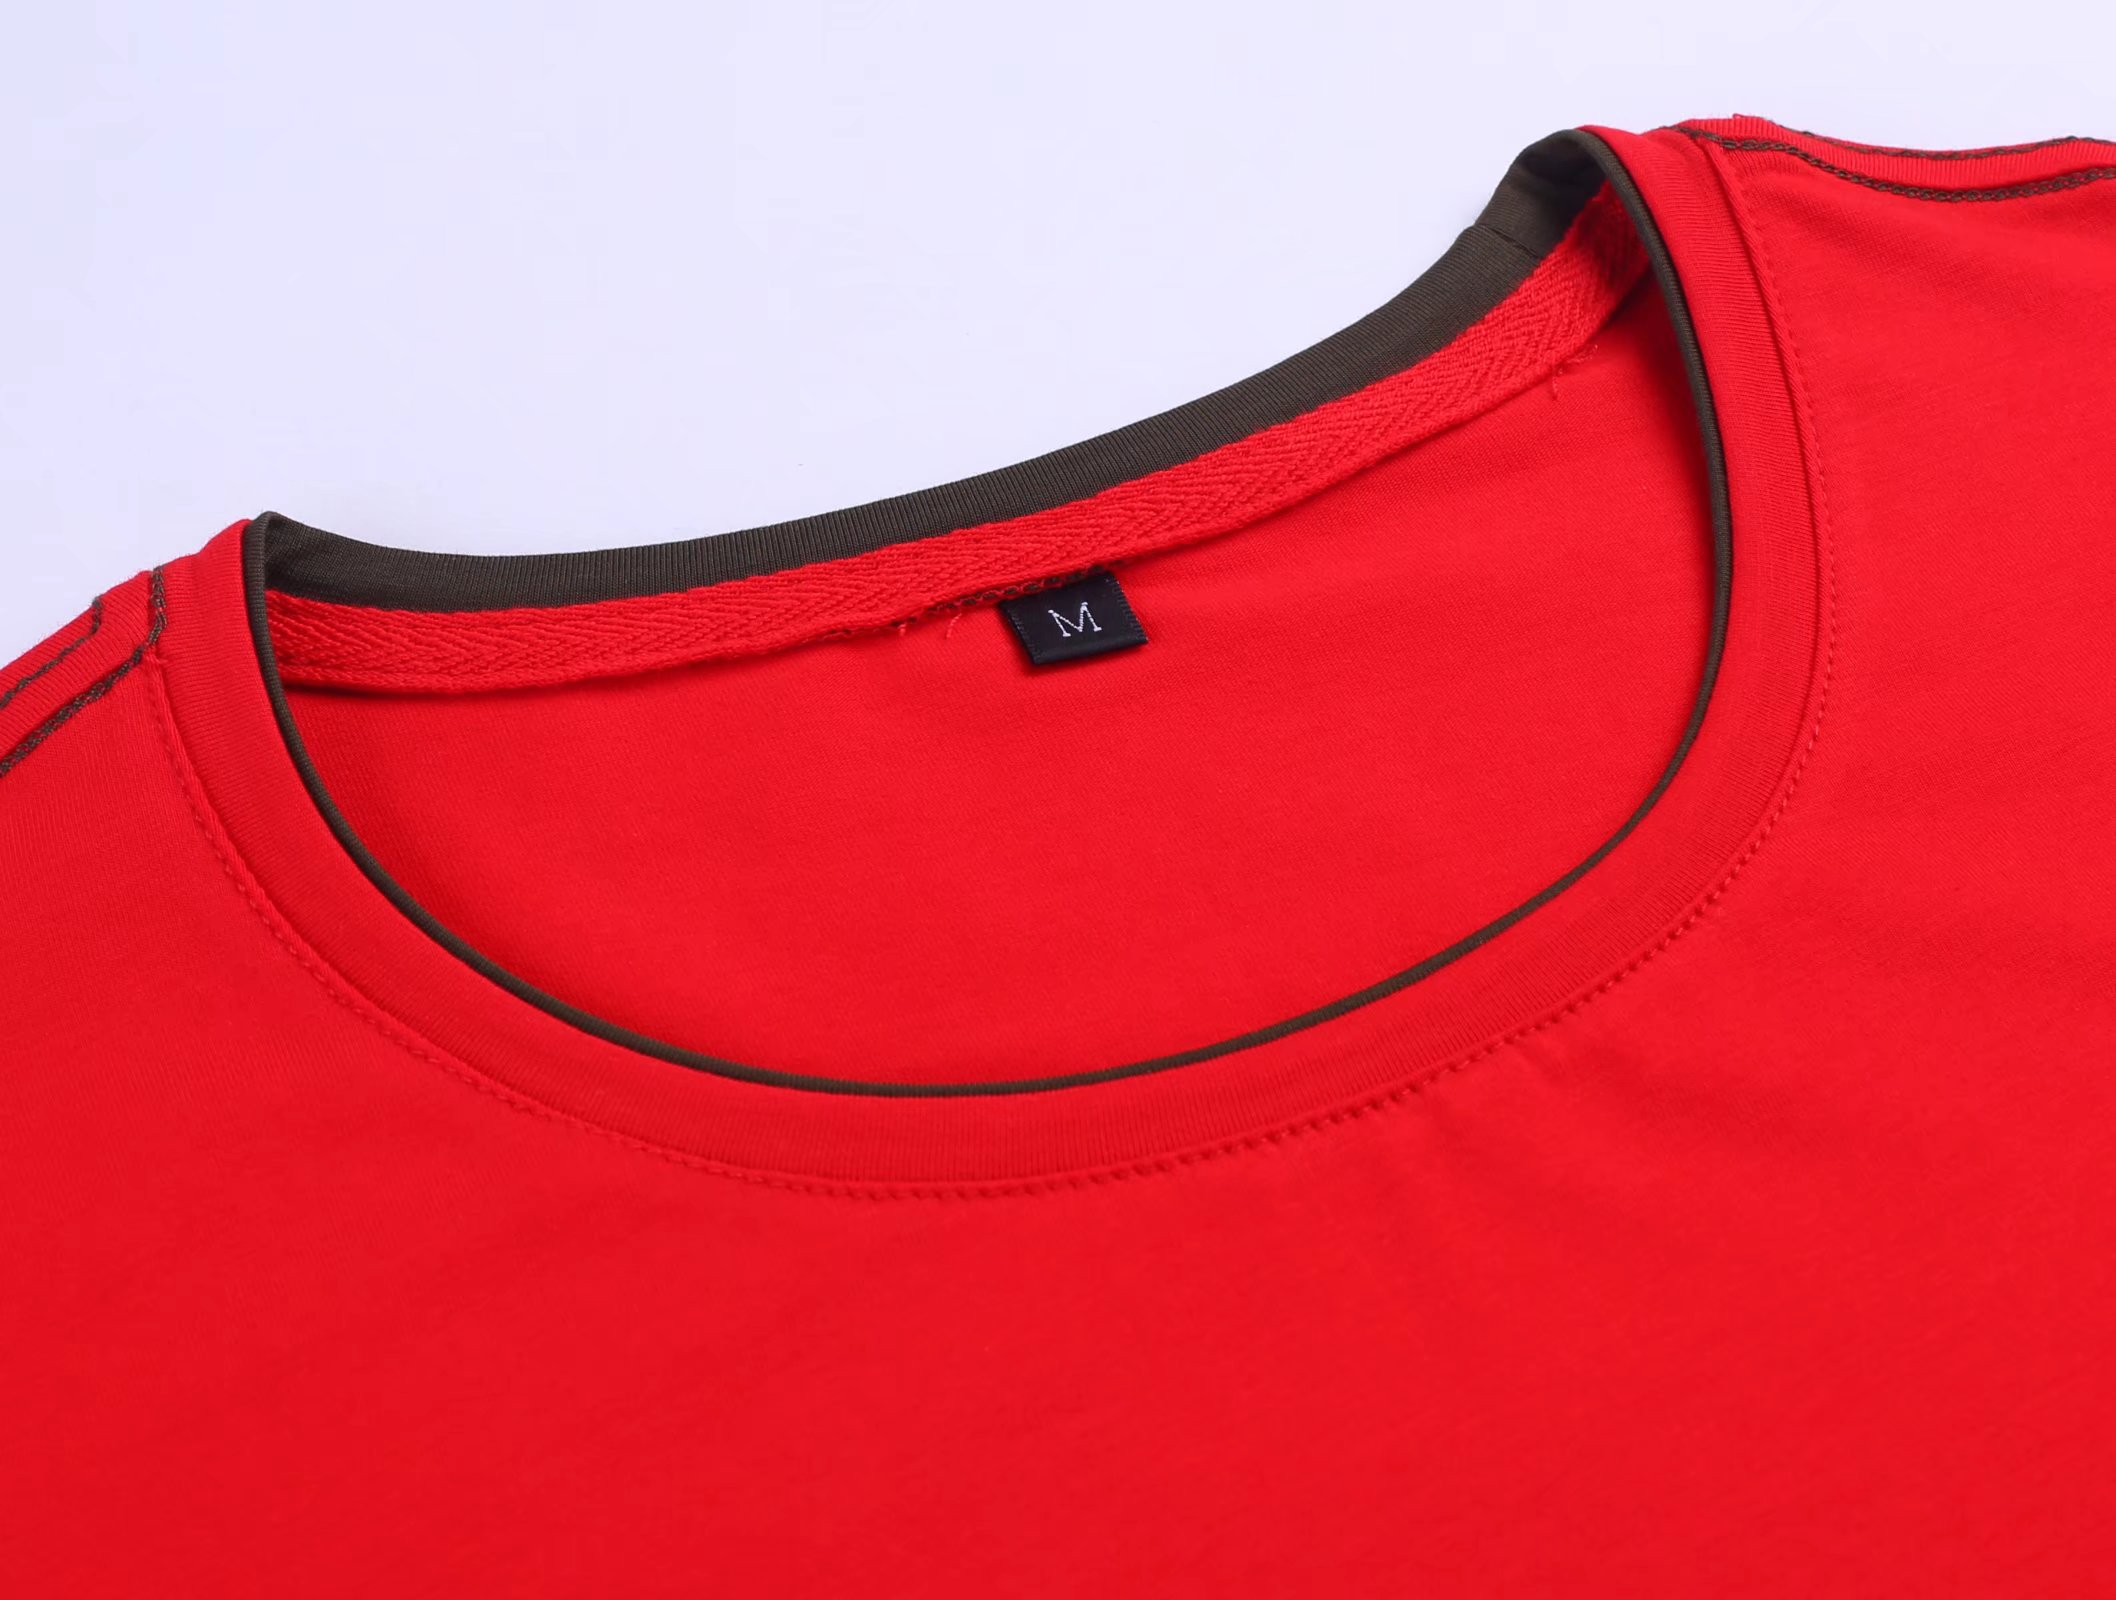 High Quality T Shirts For Blank Tshirt 190gsm Cotton Material